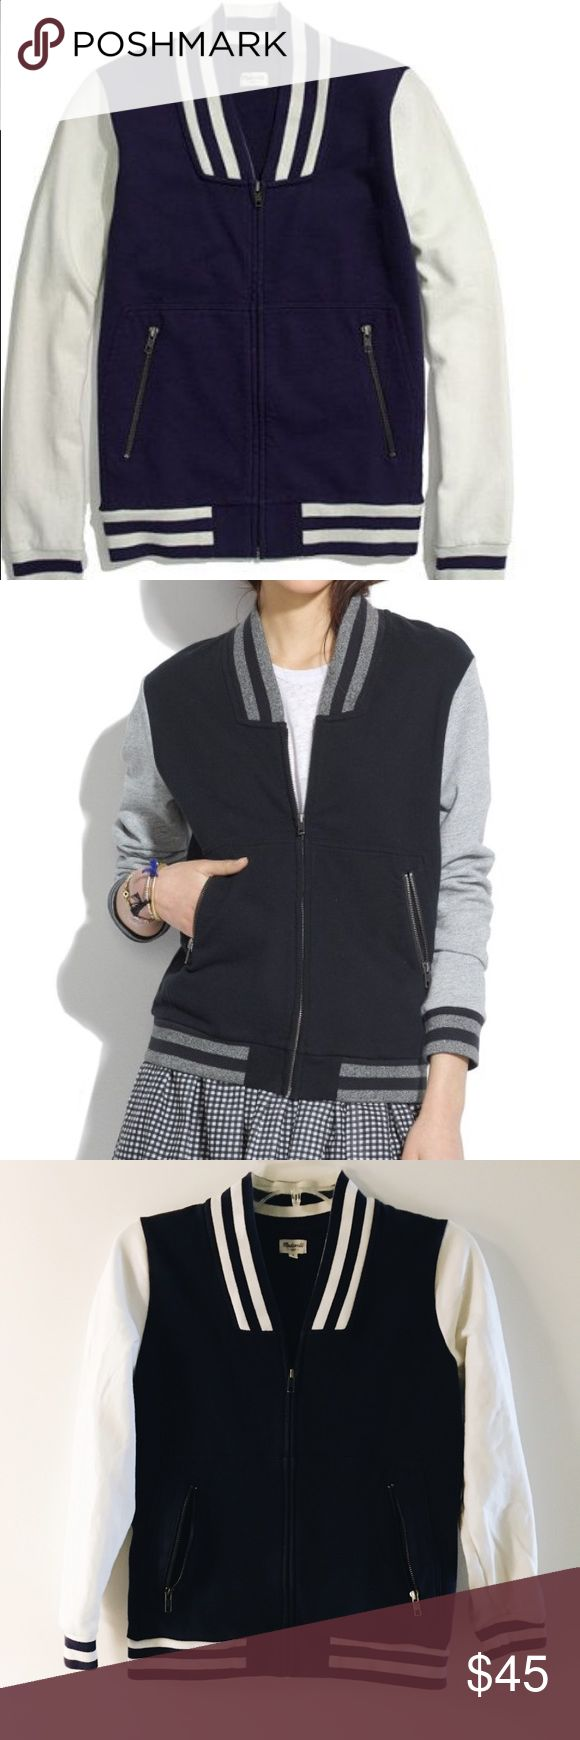 Madewell varsity sweatshirt Blue and white zip up jacket. 100% cotton ***will not ship until 4/19*** Madewell Tops Sweatshirts & Hoodies